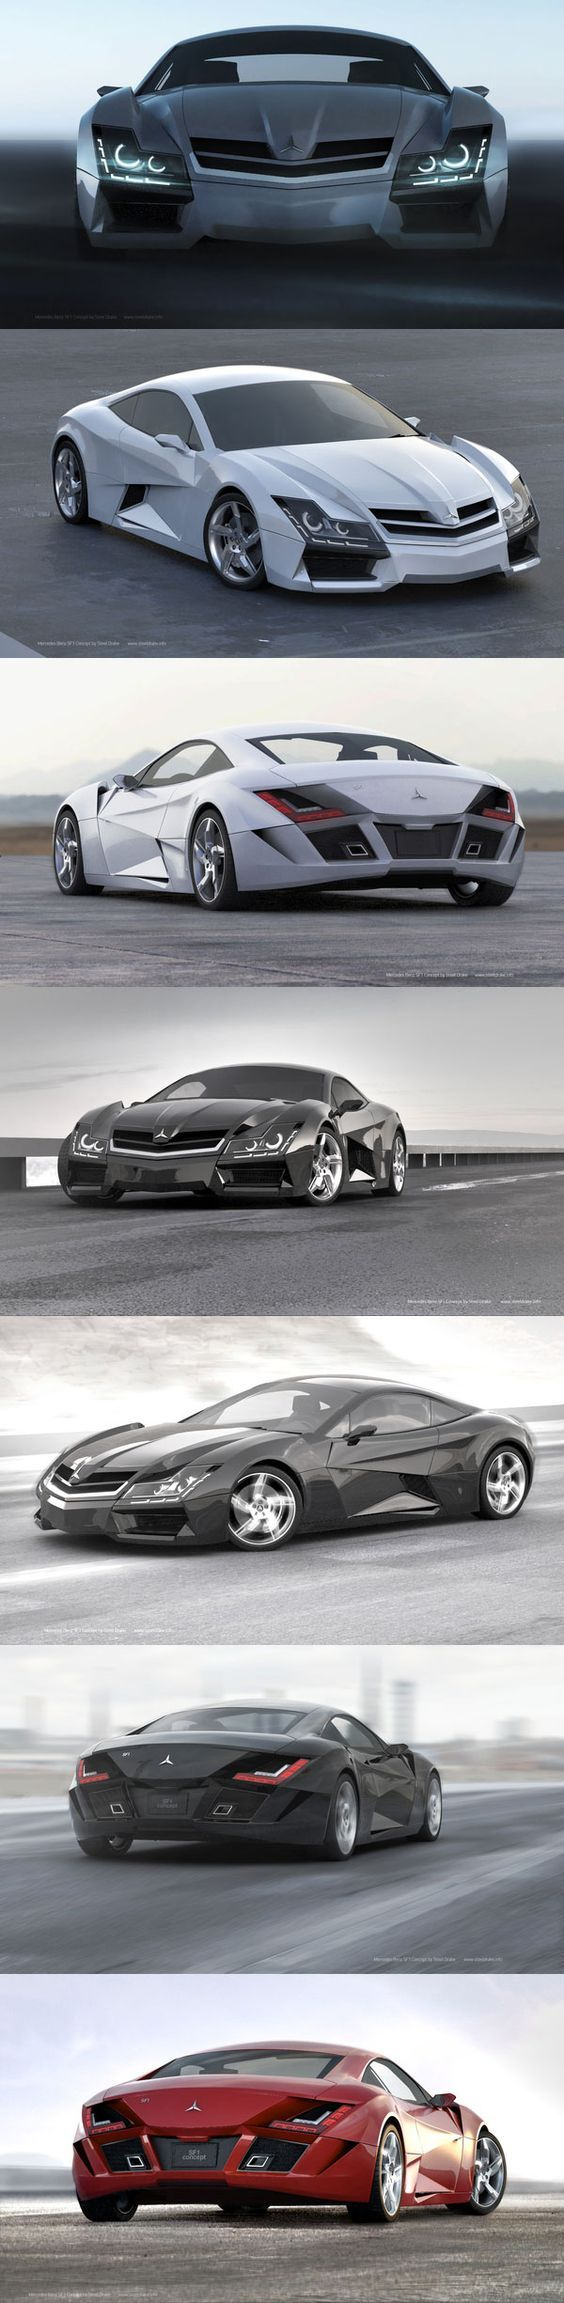 Awesome cars mercedes super car concept cars design and concepts best